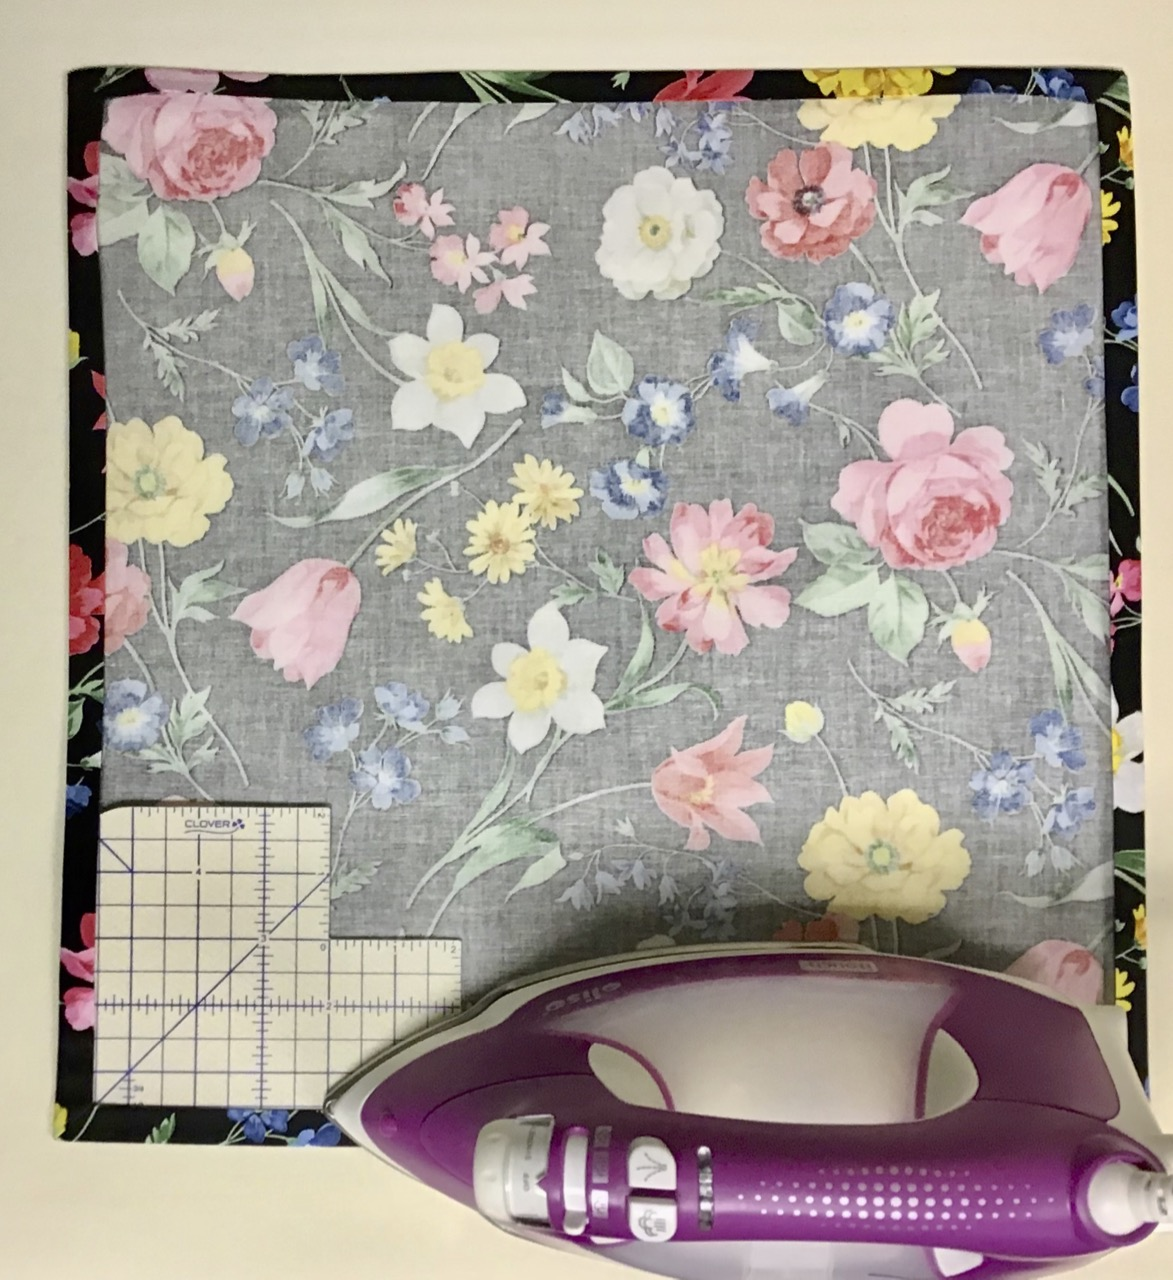 Sew No-Hassle Dinner Napkins with Nancy Zieman's Mitered Corners